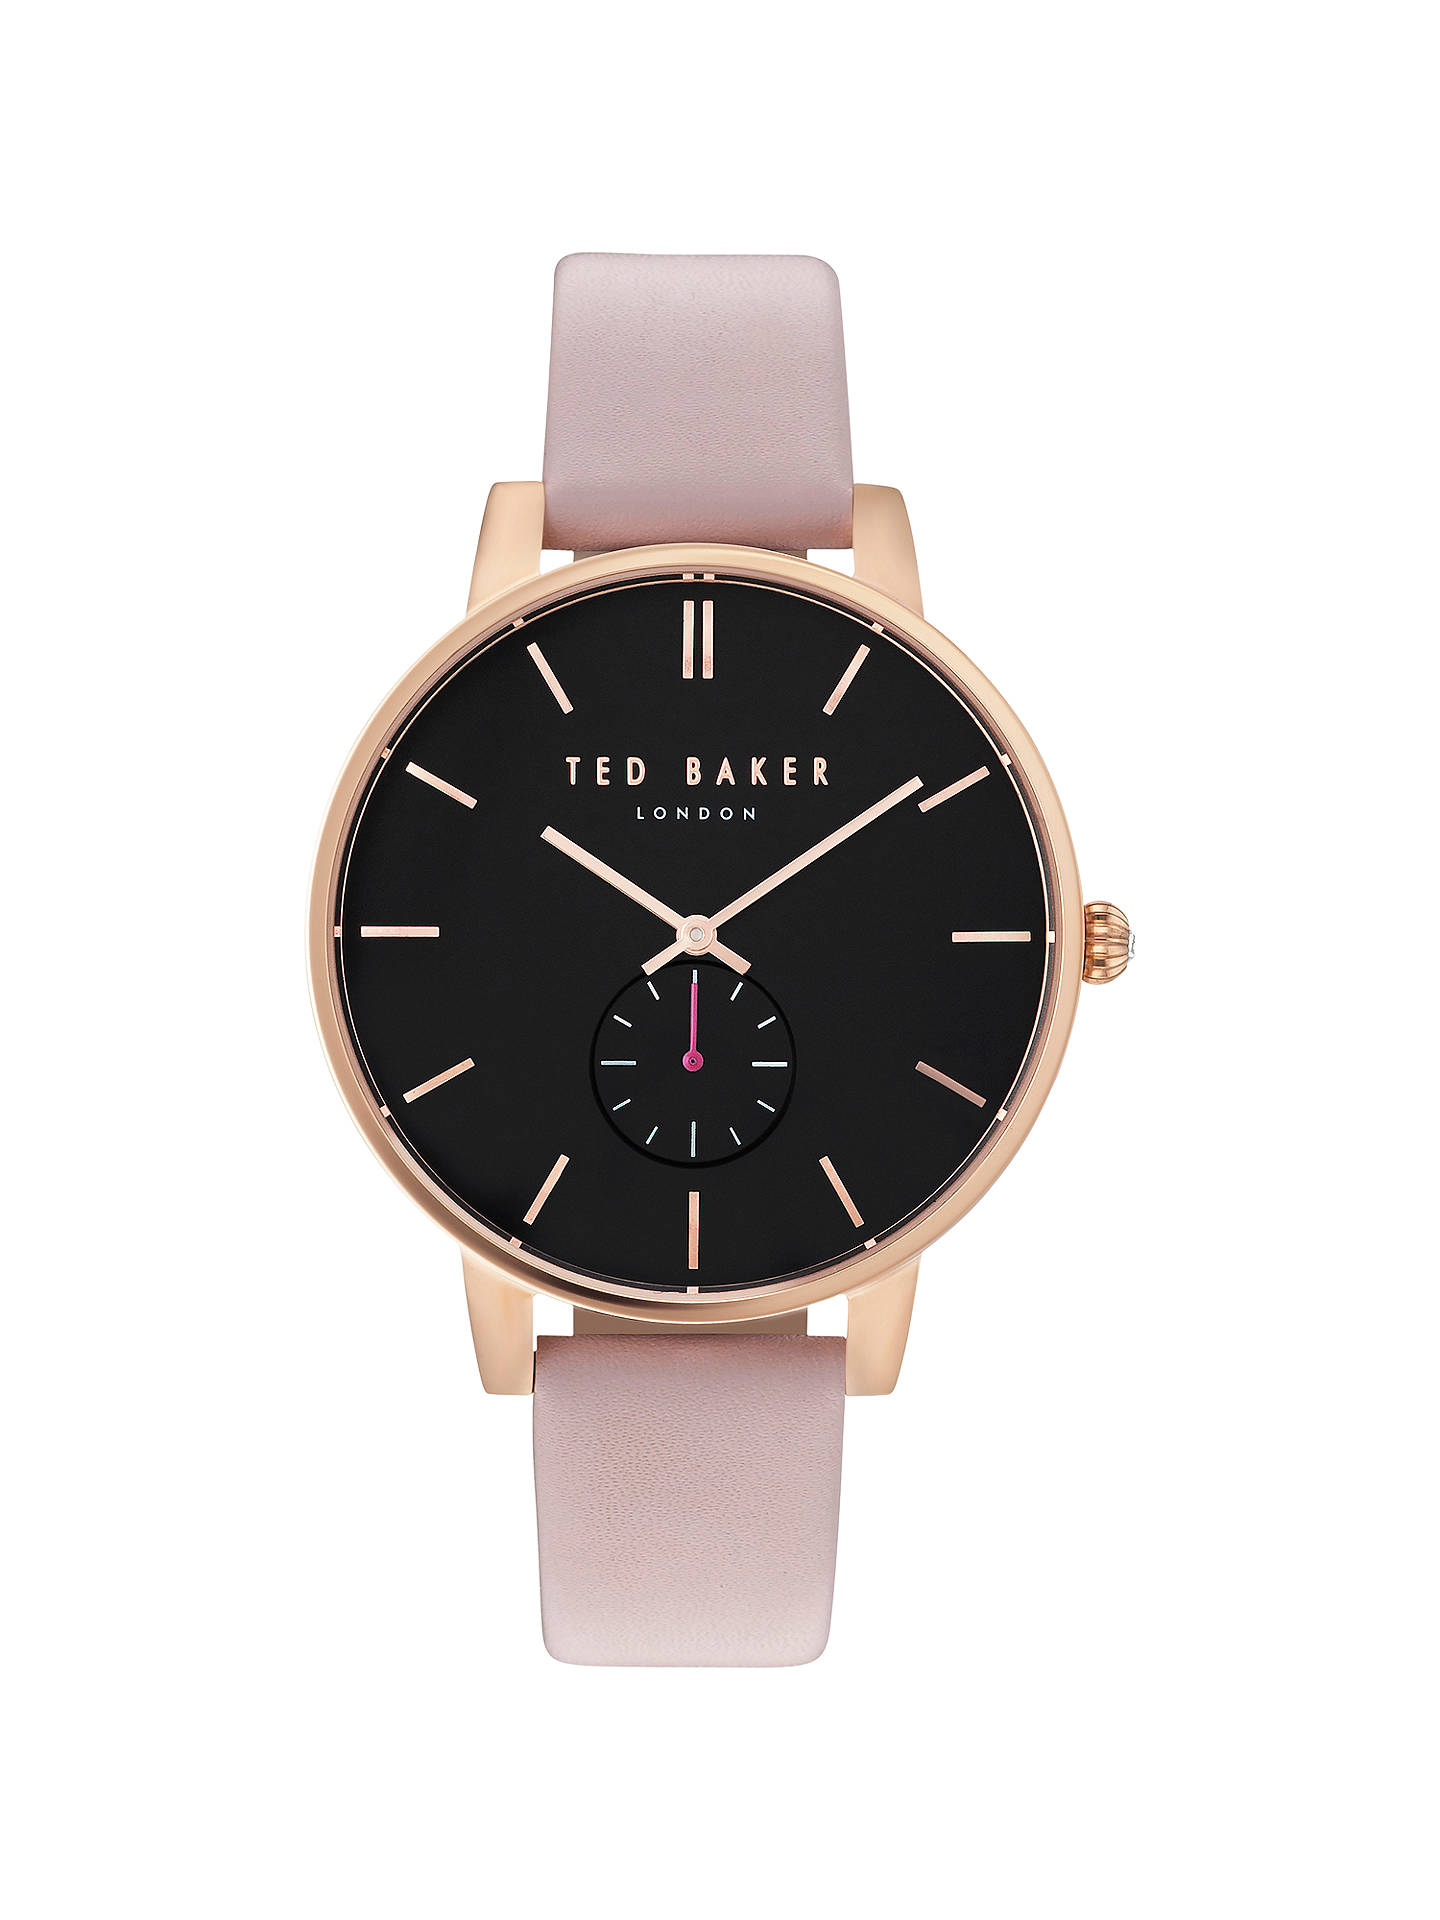 d4ed9c76050d Ted Baker Women s Olivia Leather Strap Watch at John Lewis   Partners